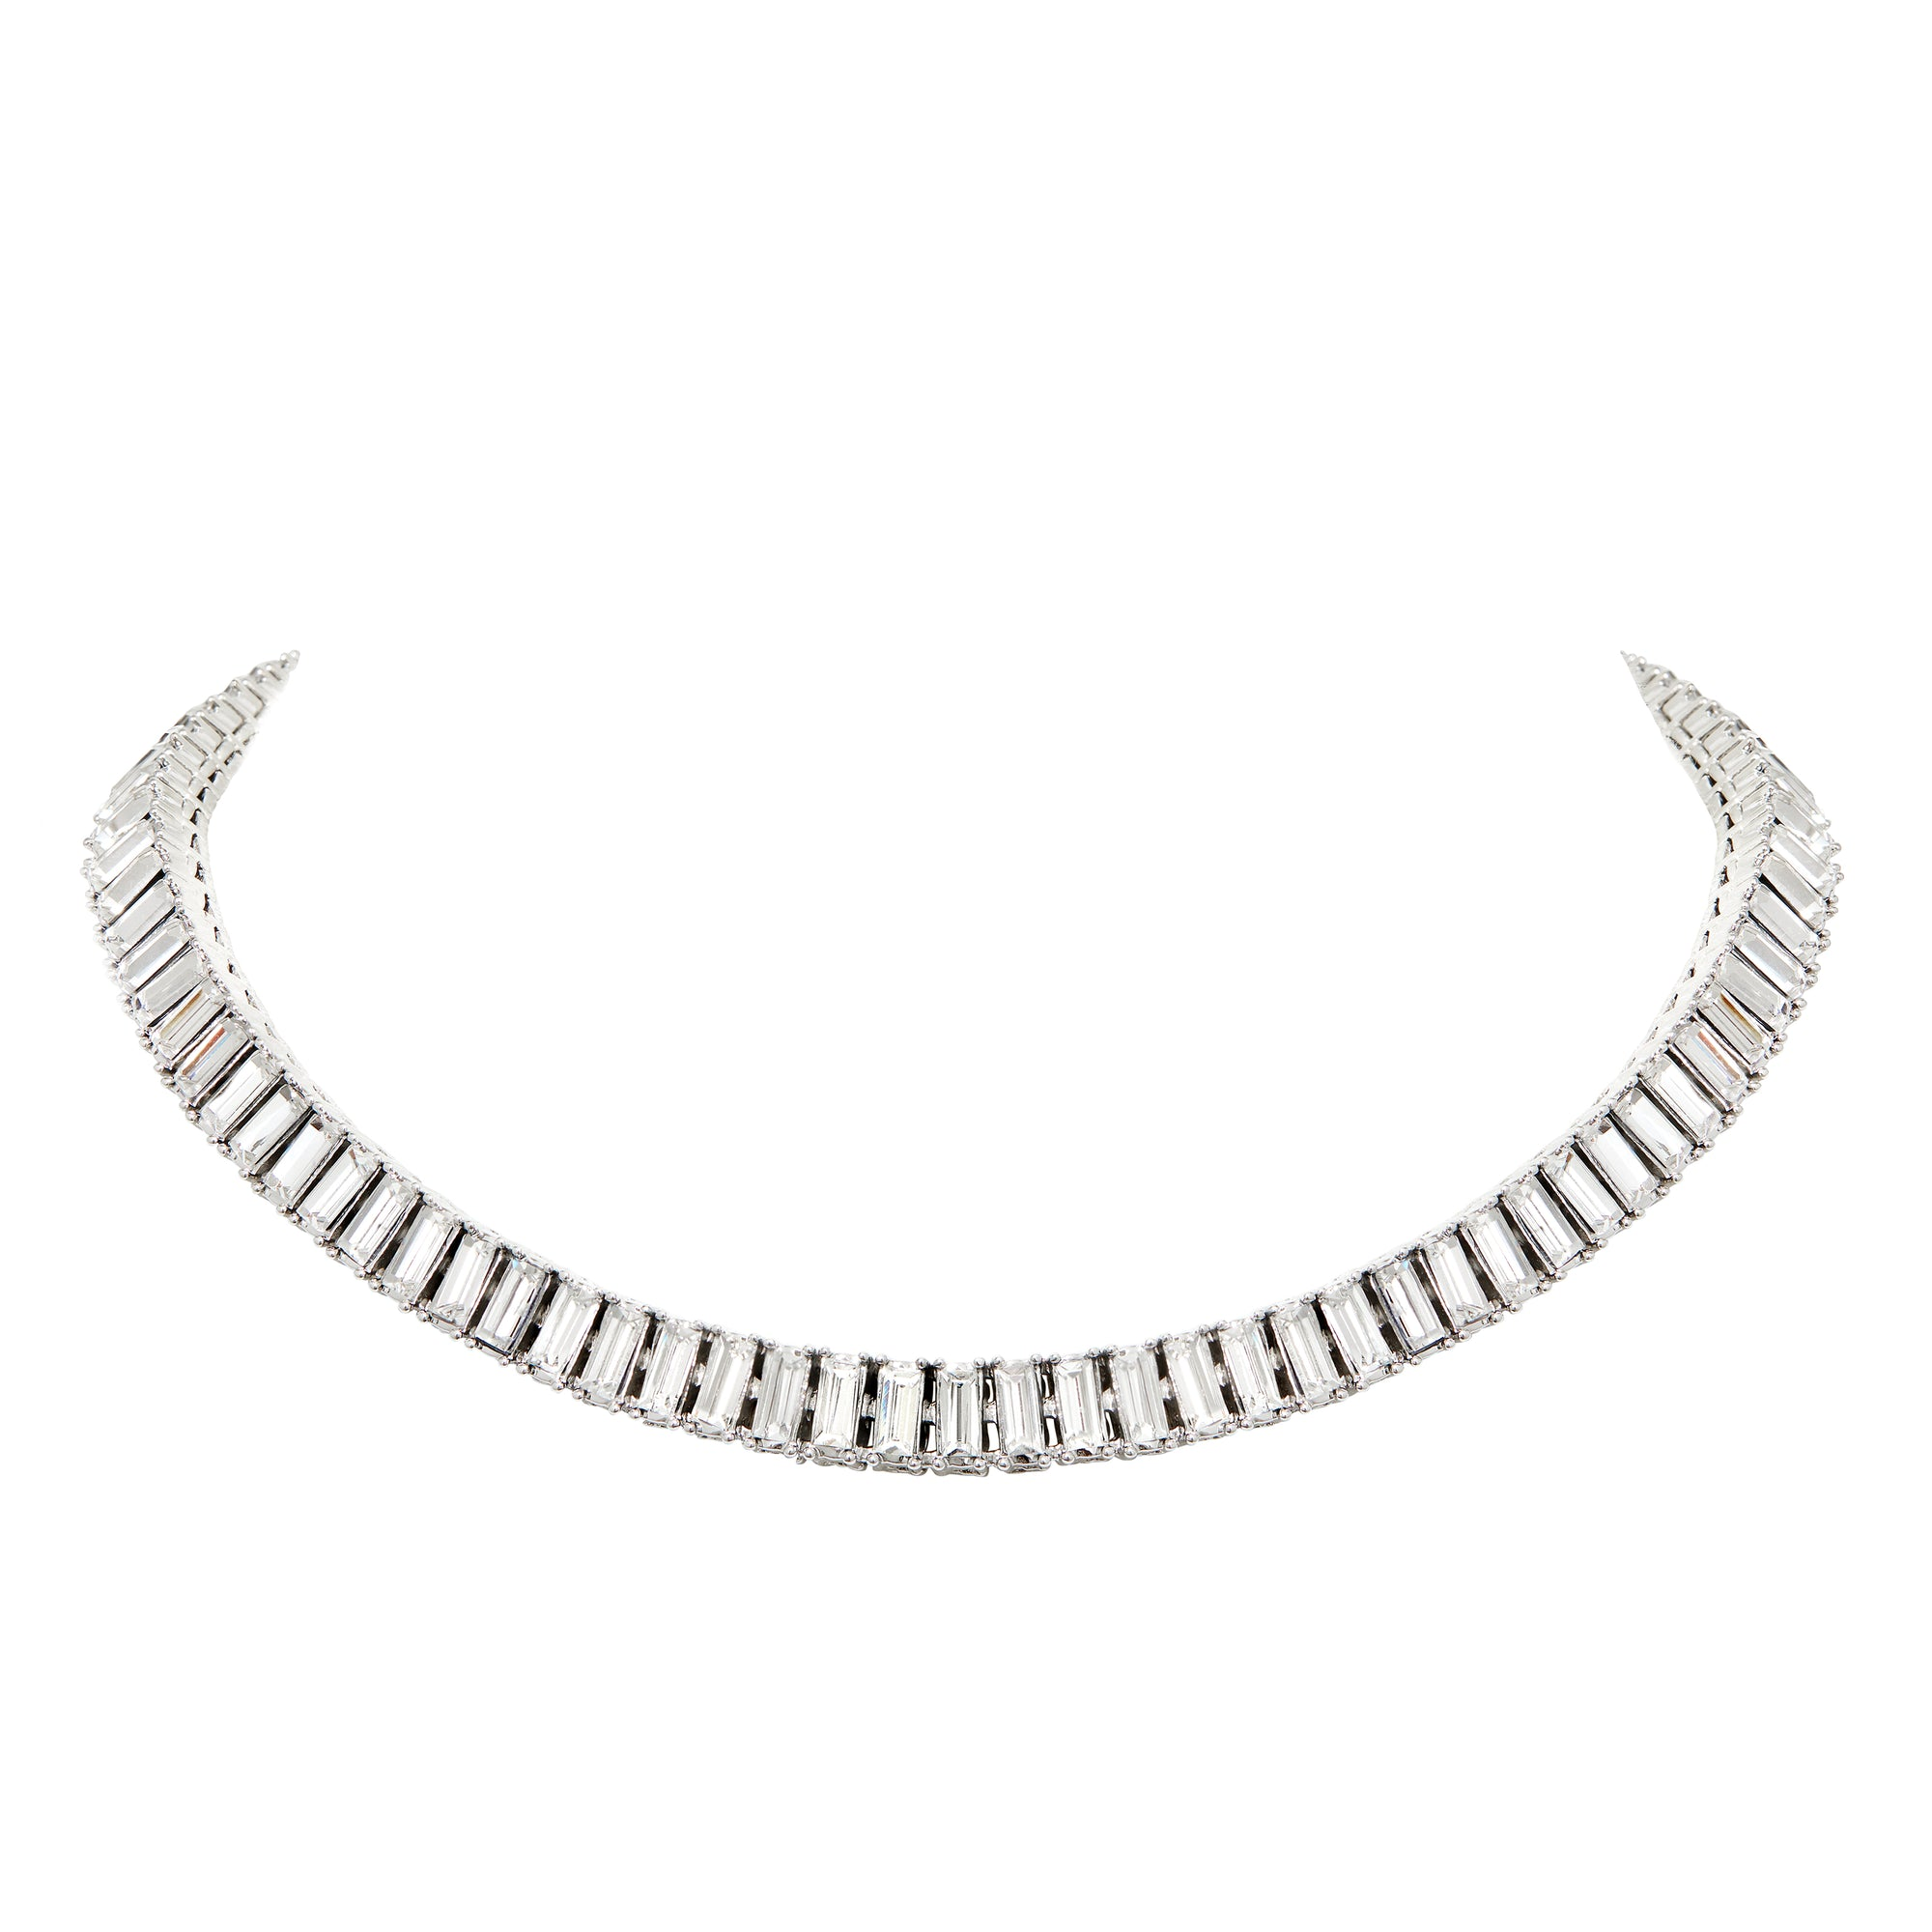 The FALLON Baguette Swag Collar Necklace.  Rhodium-plated brass, cubic zirconia stones.